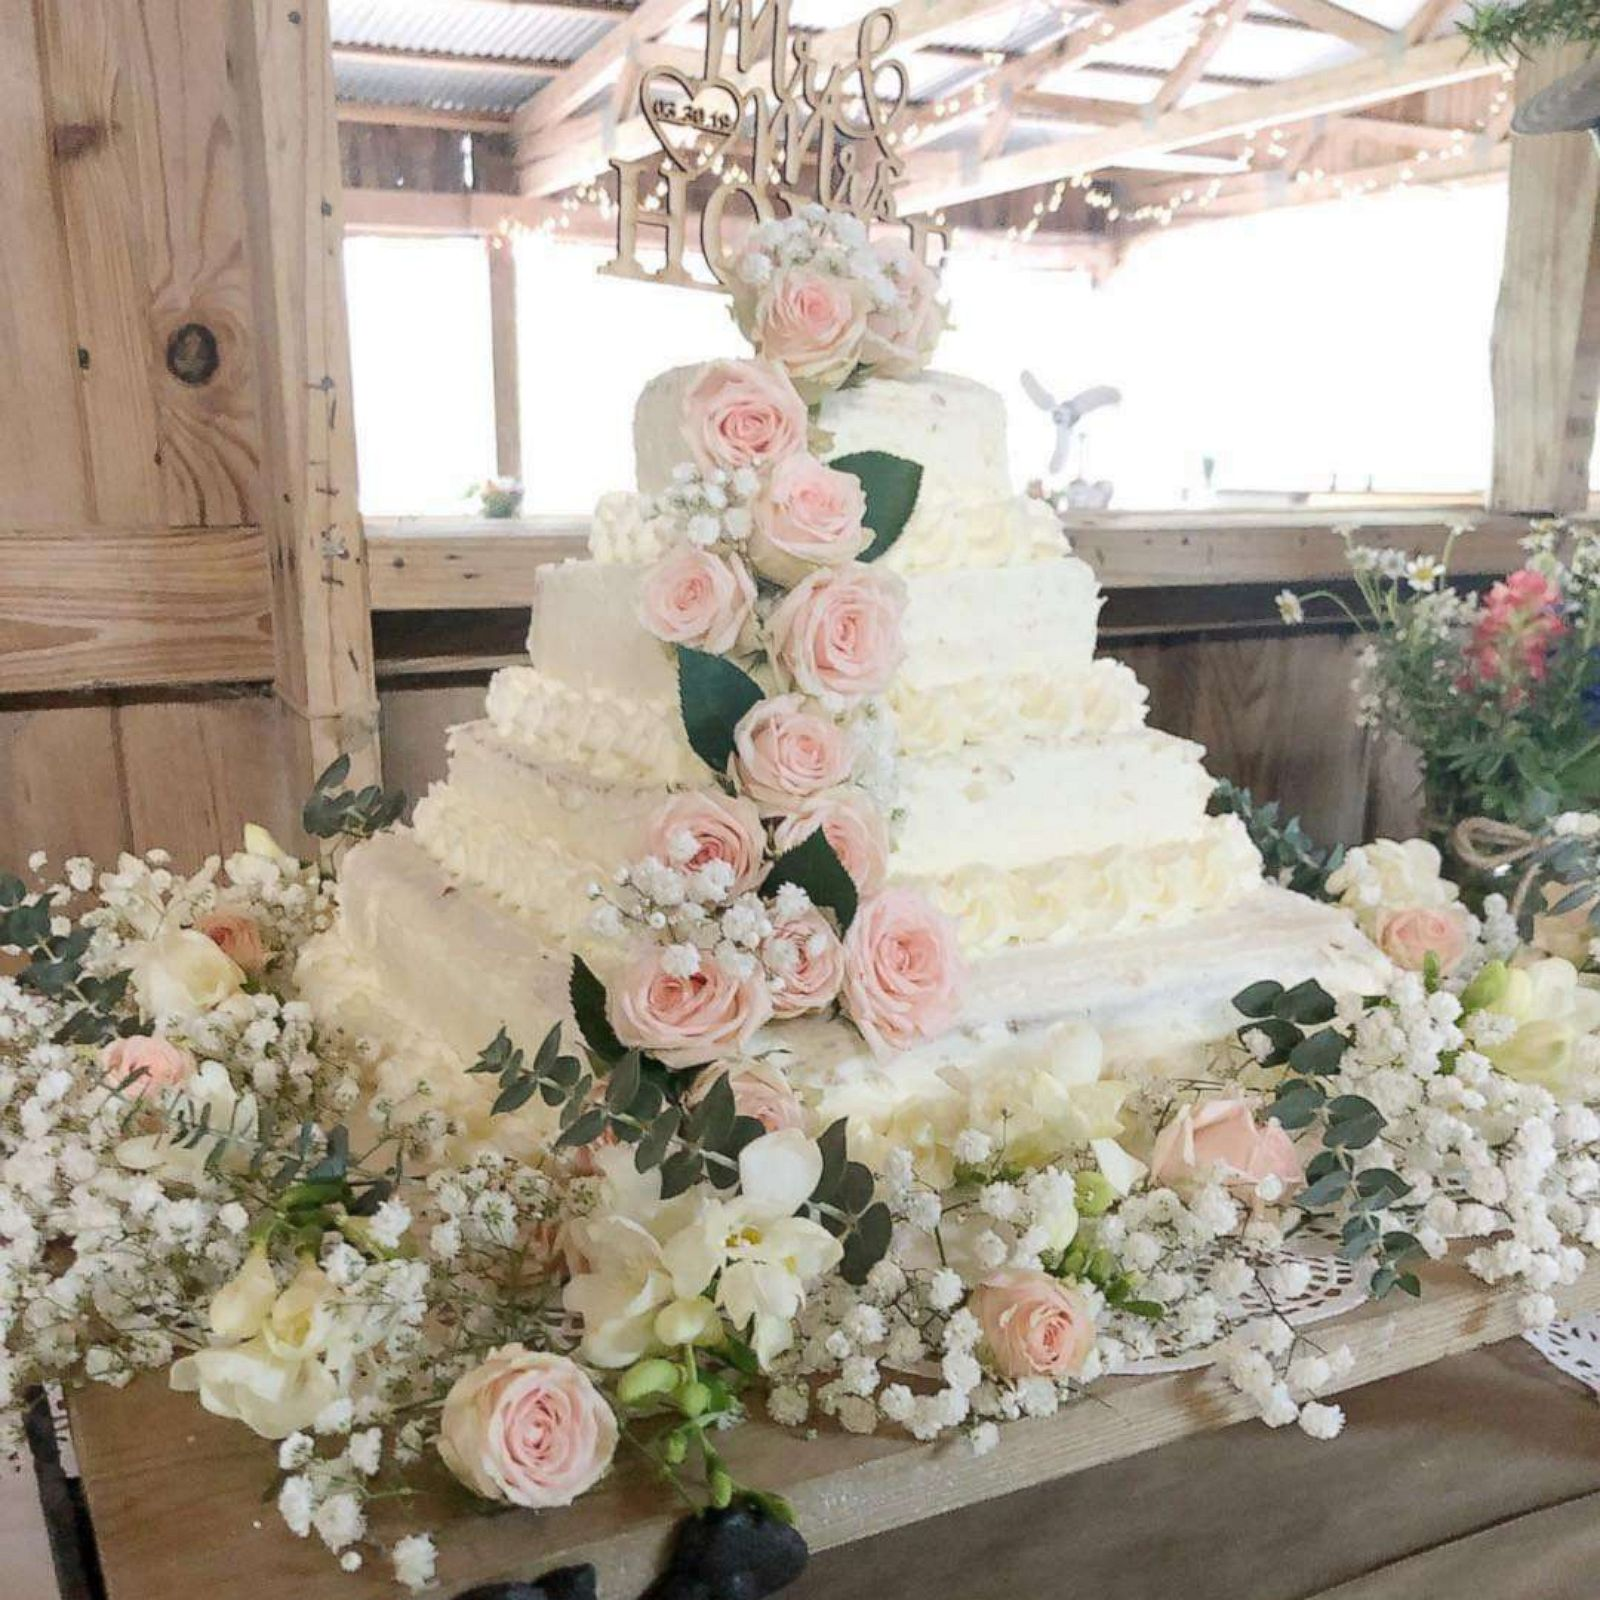 Costco Flowers Wedding.This Diy Costco Wedding Cake Hack With Trader Joe S Flowers Only